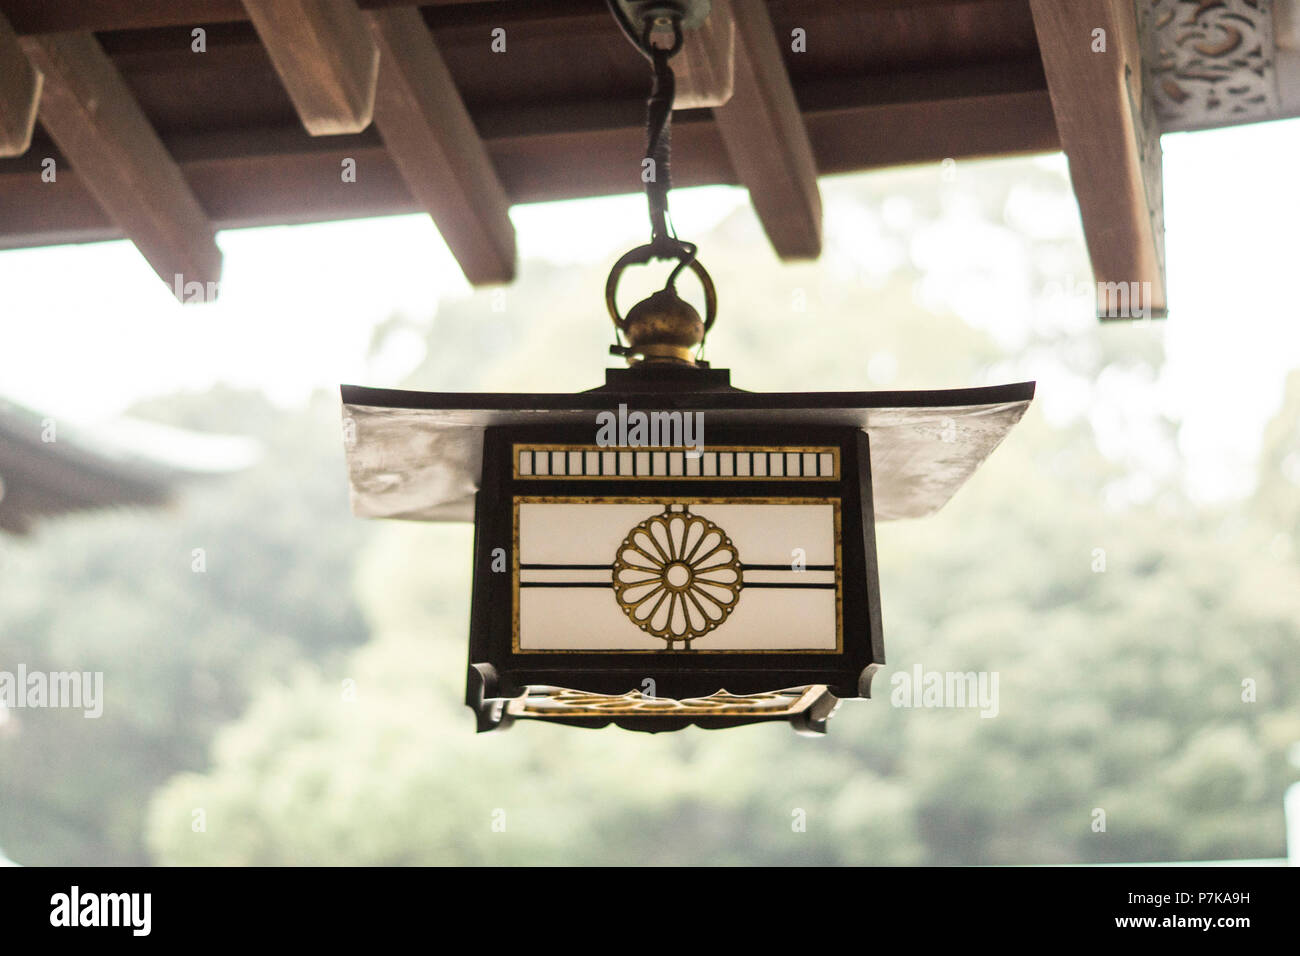 A hanging oil lamp in a temple complex in Tokyo - Stock Image